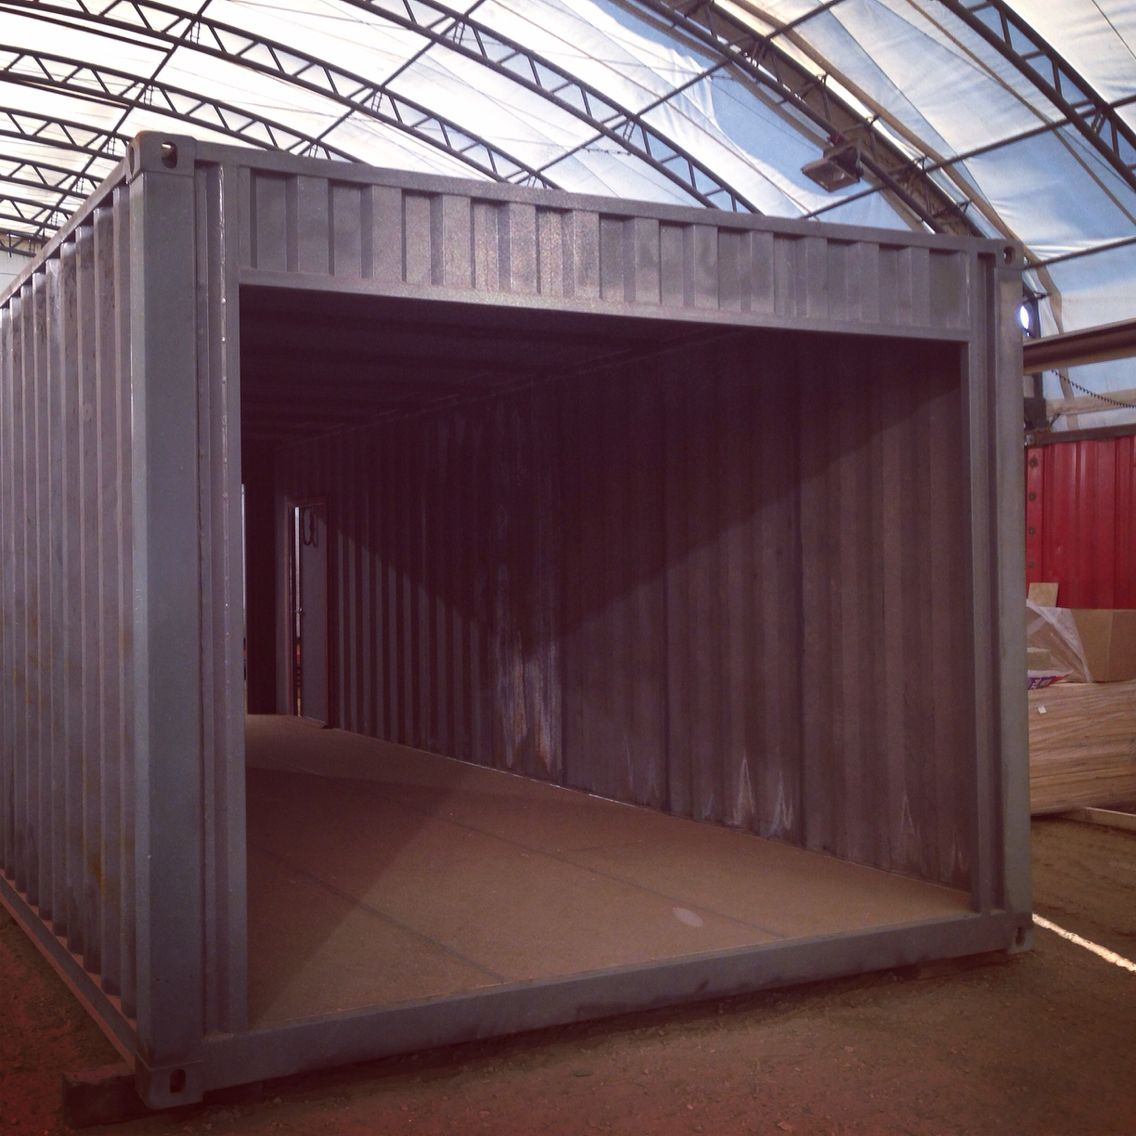 12 Wide Shipping Containers Manufactured In Our Head Office Facility Container House Modern Pergola Architecture